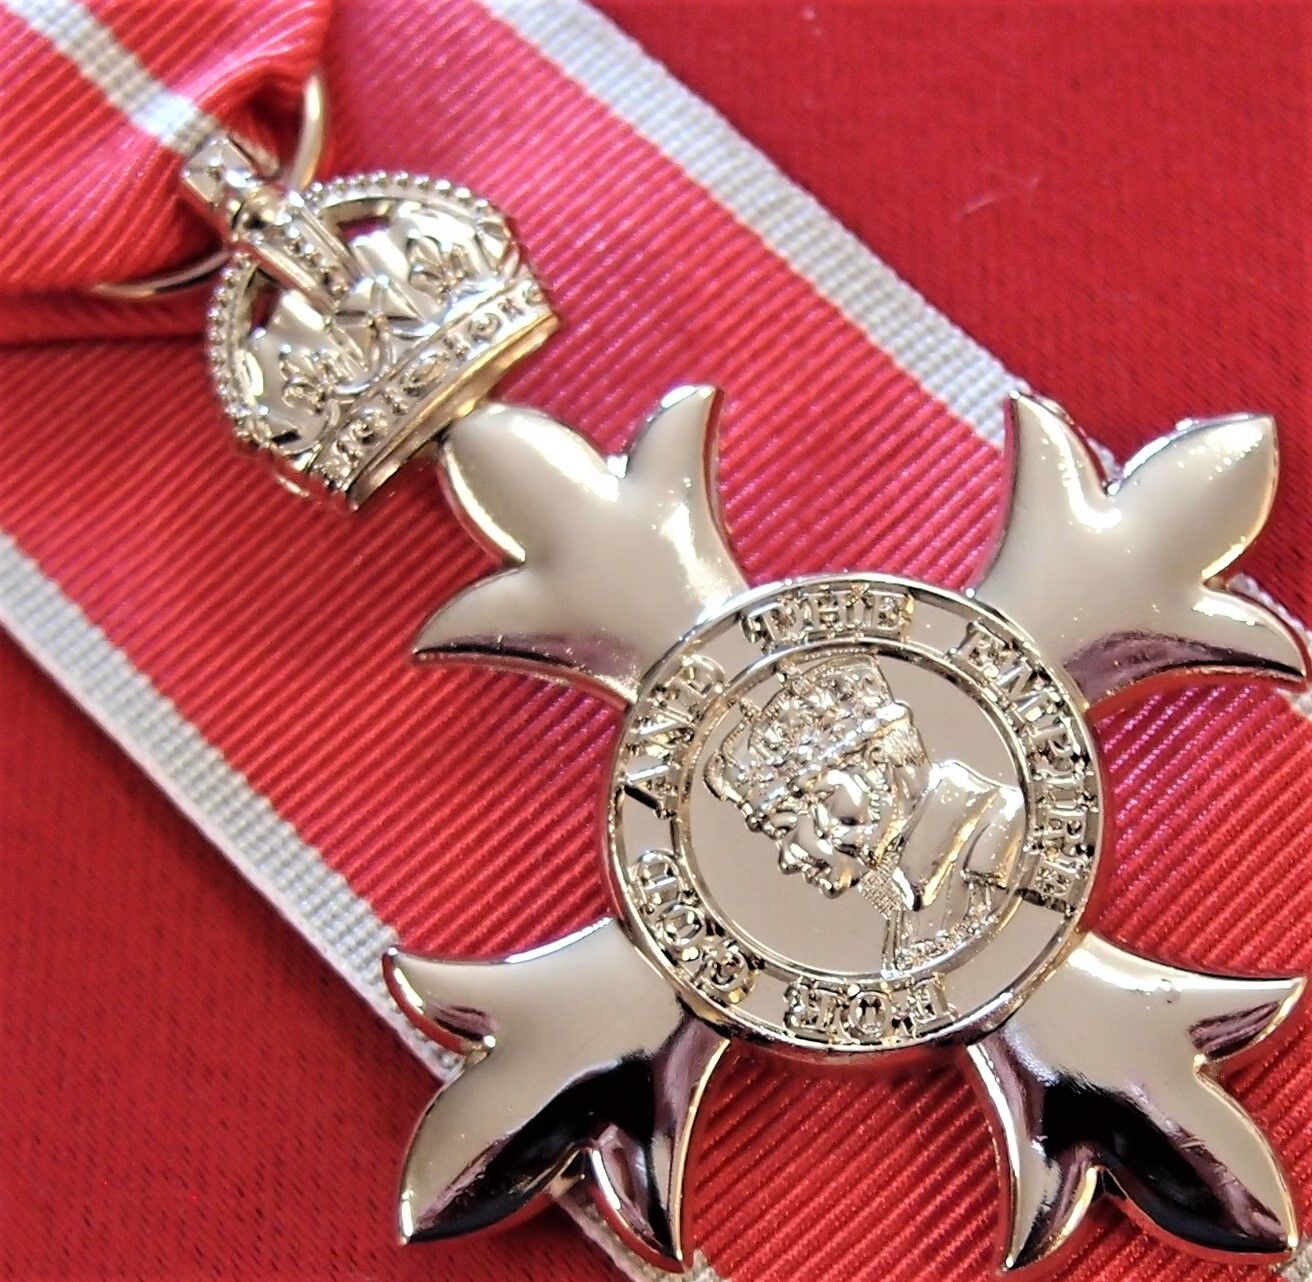 MBE MILITARY WW2 AUSTRALIAN ORDER OF THE BRITISH EMPIRE MEDAL REPLICA ANZAC WW2